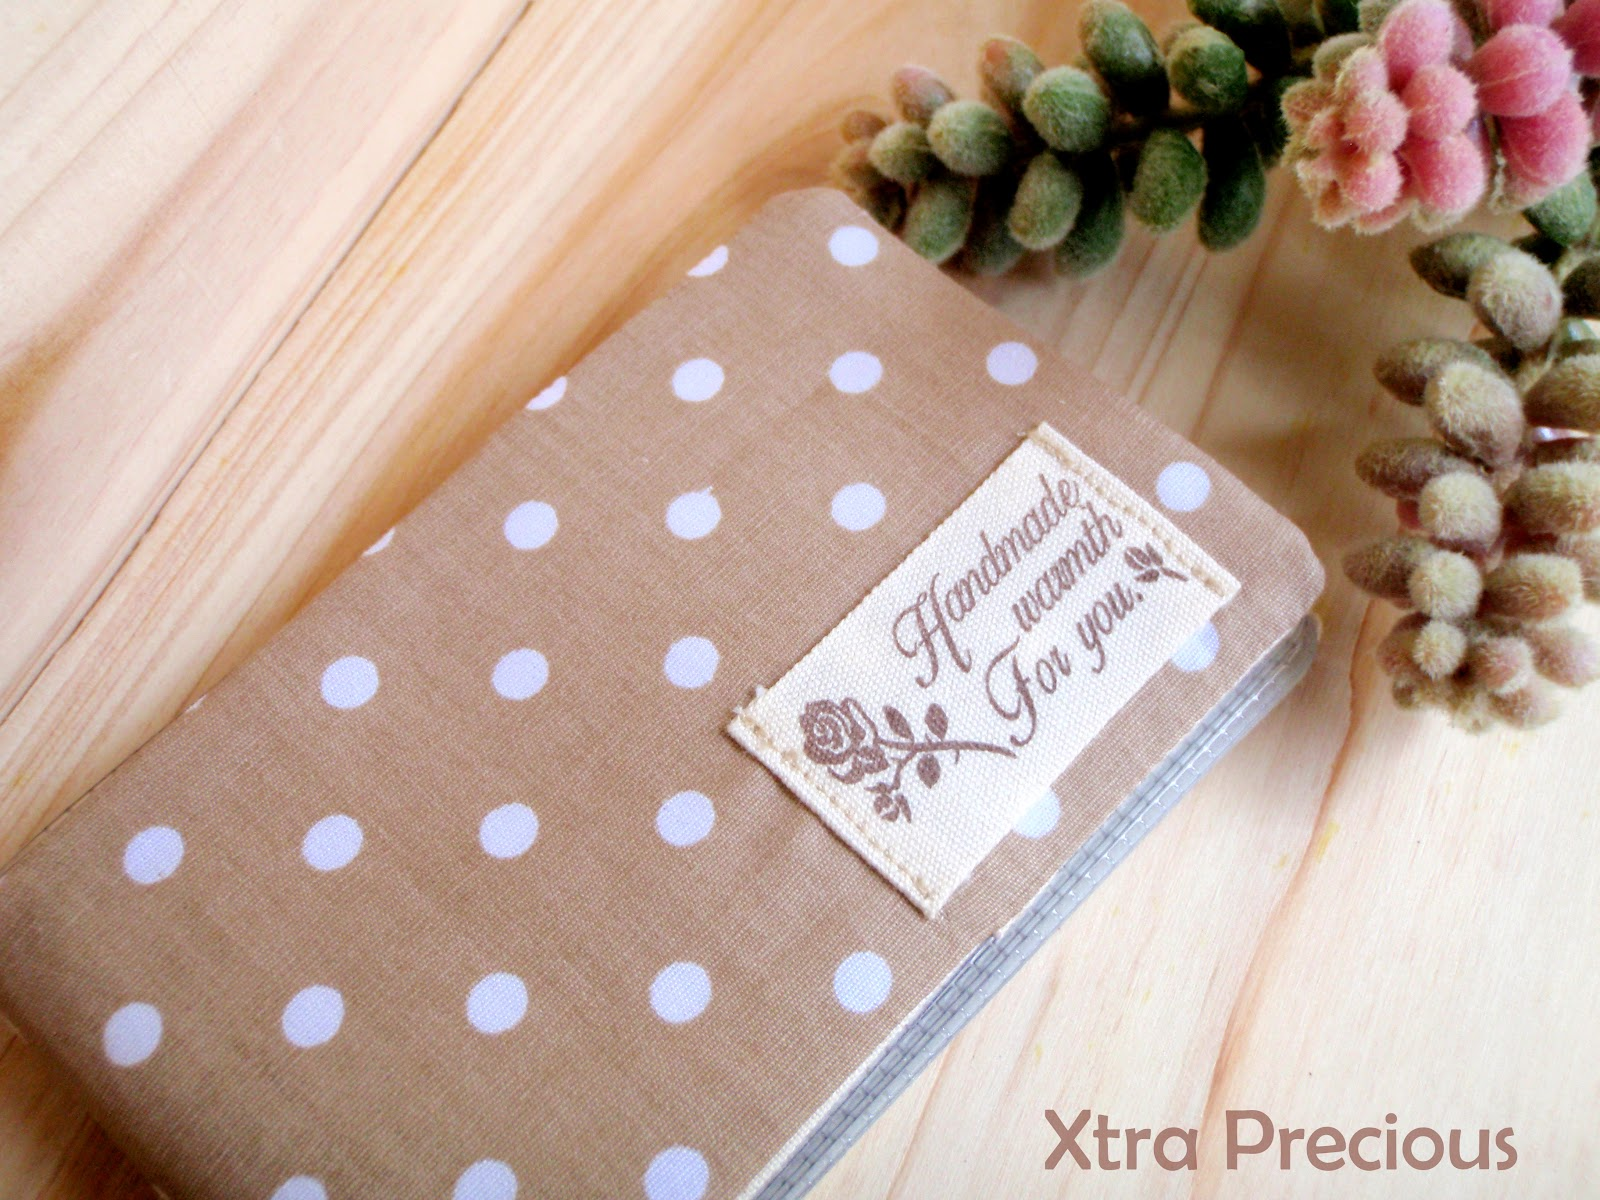 Xtra Precious Handmade and Zakka: Uniquely Handmade Fabric Business ...